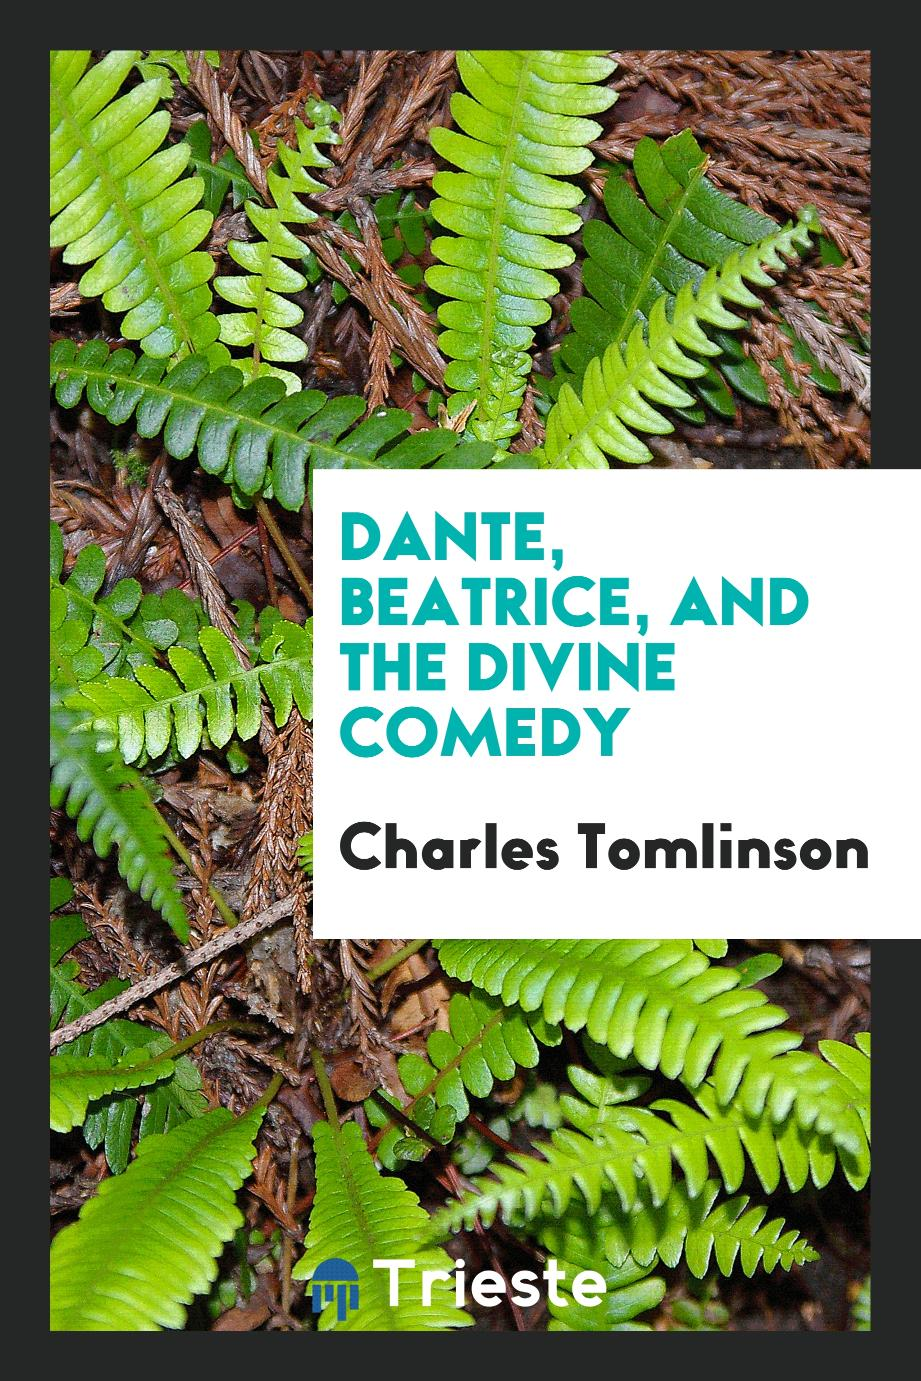 Charles Tomlinson - Dante, Beatrice, and the Divine Comedy